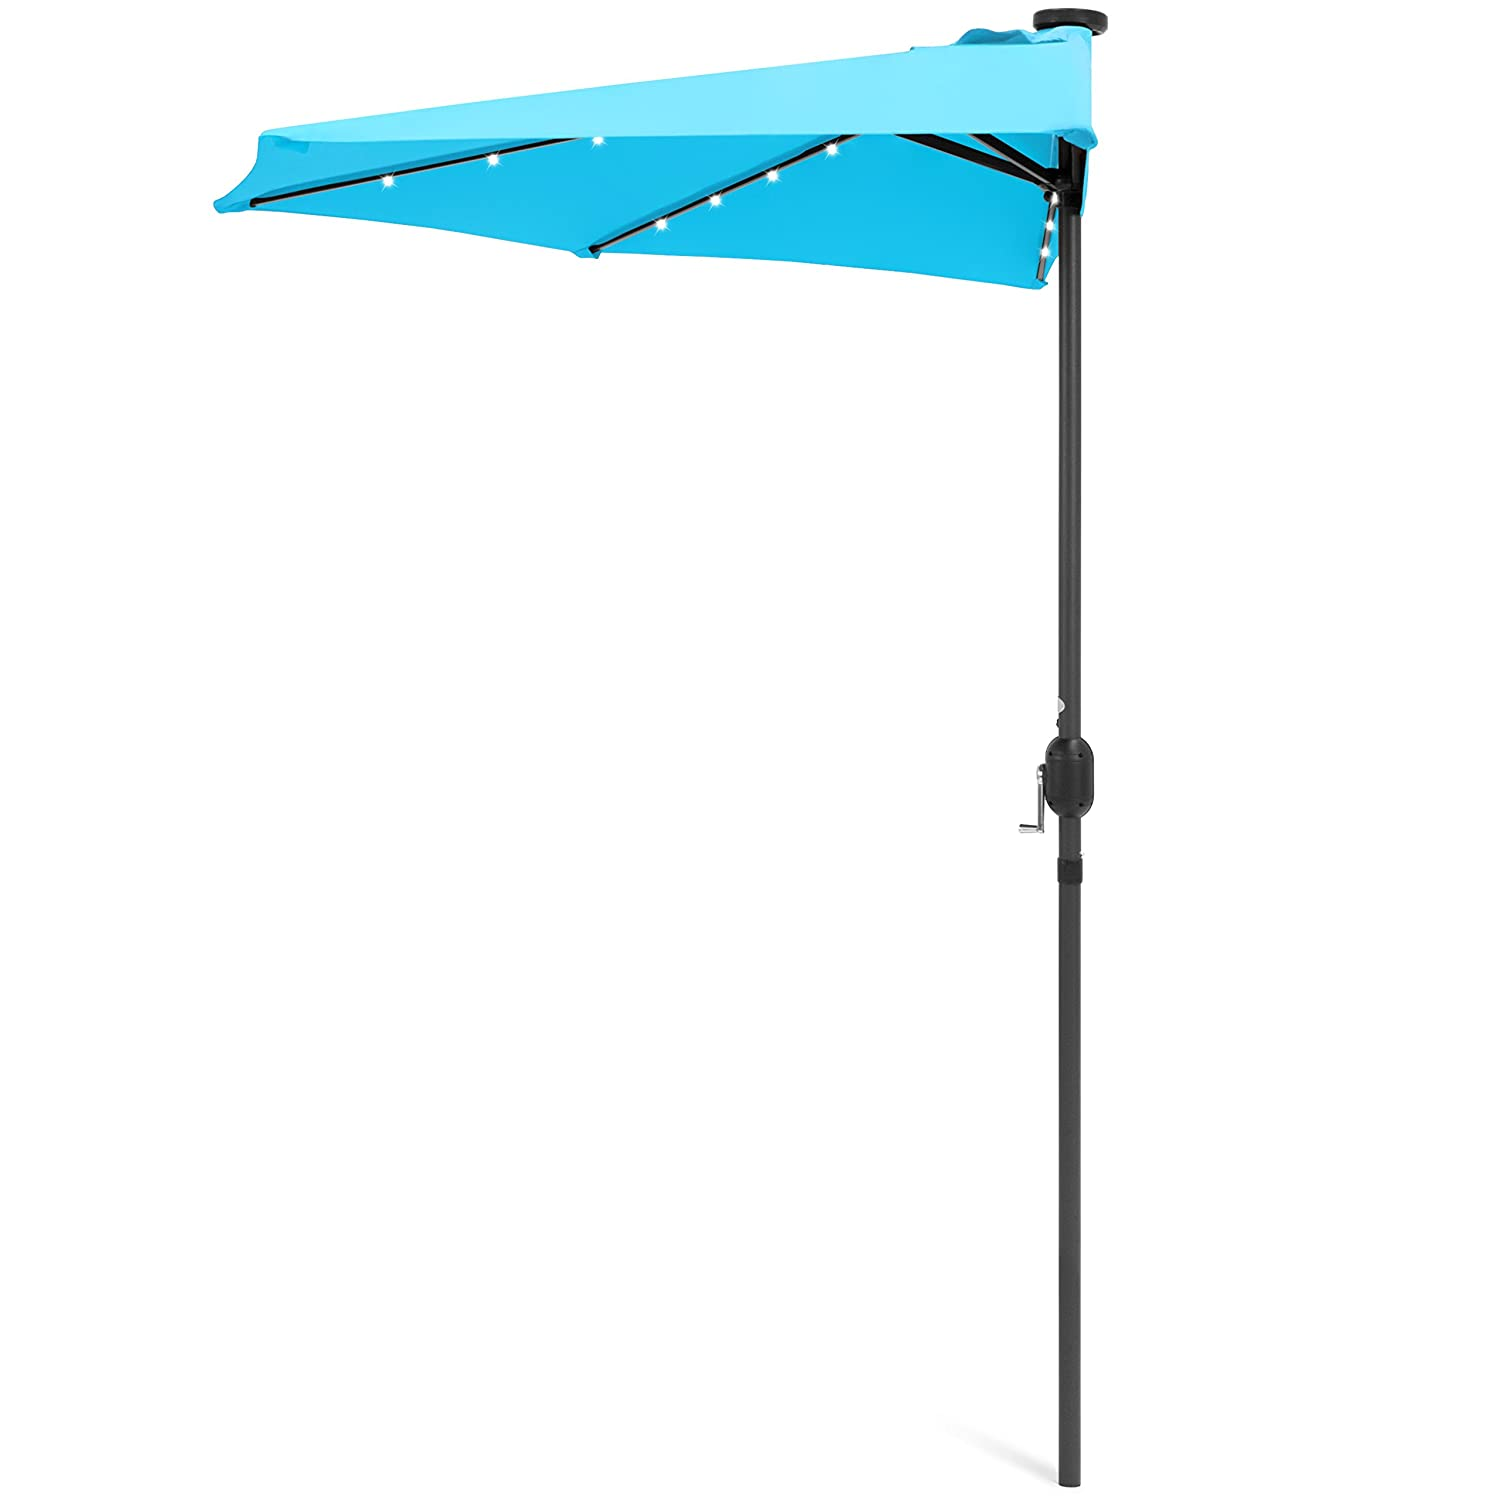 Best Choice Products 8.5ft Solar LED Half Umbrella for Backyard, Patio, Porch w Crank – Light Blue